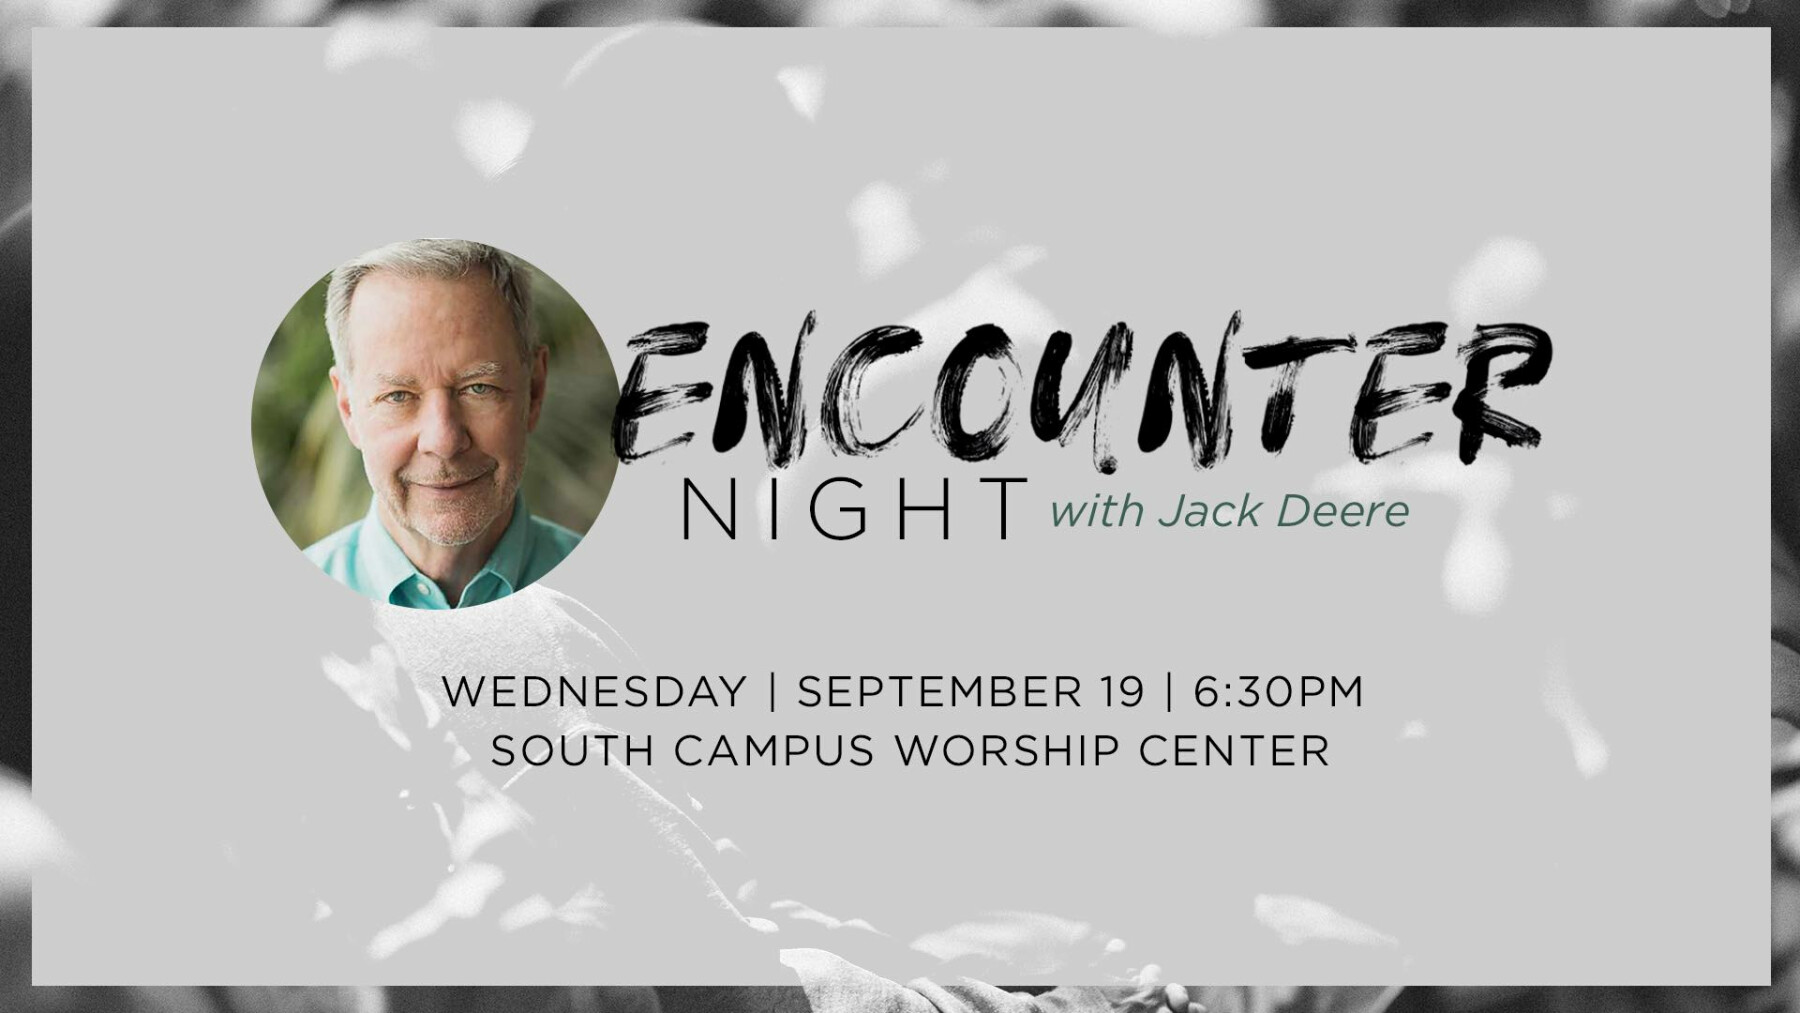 Encounter Night with Jack Deere